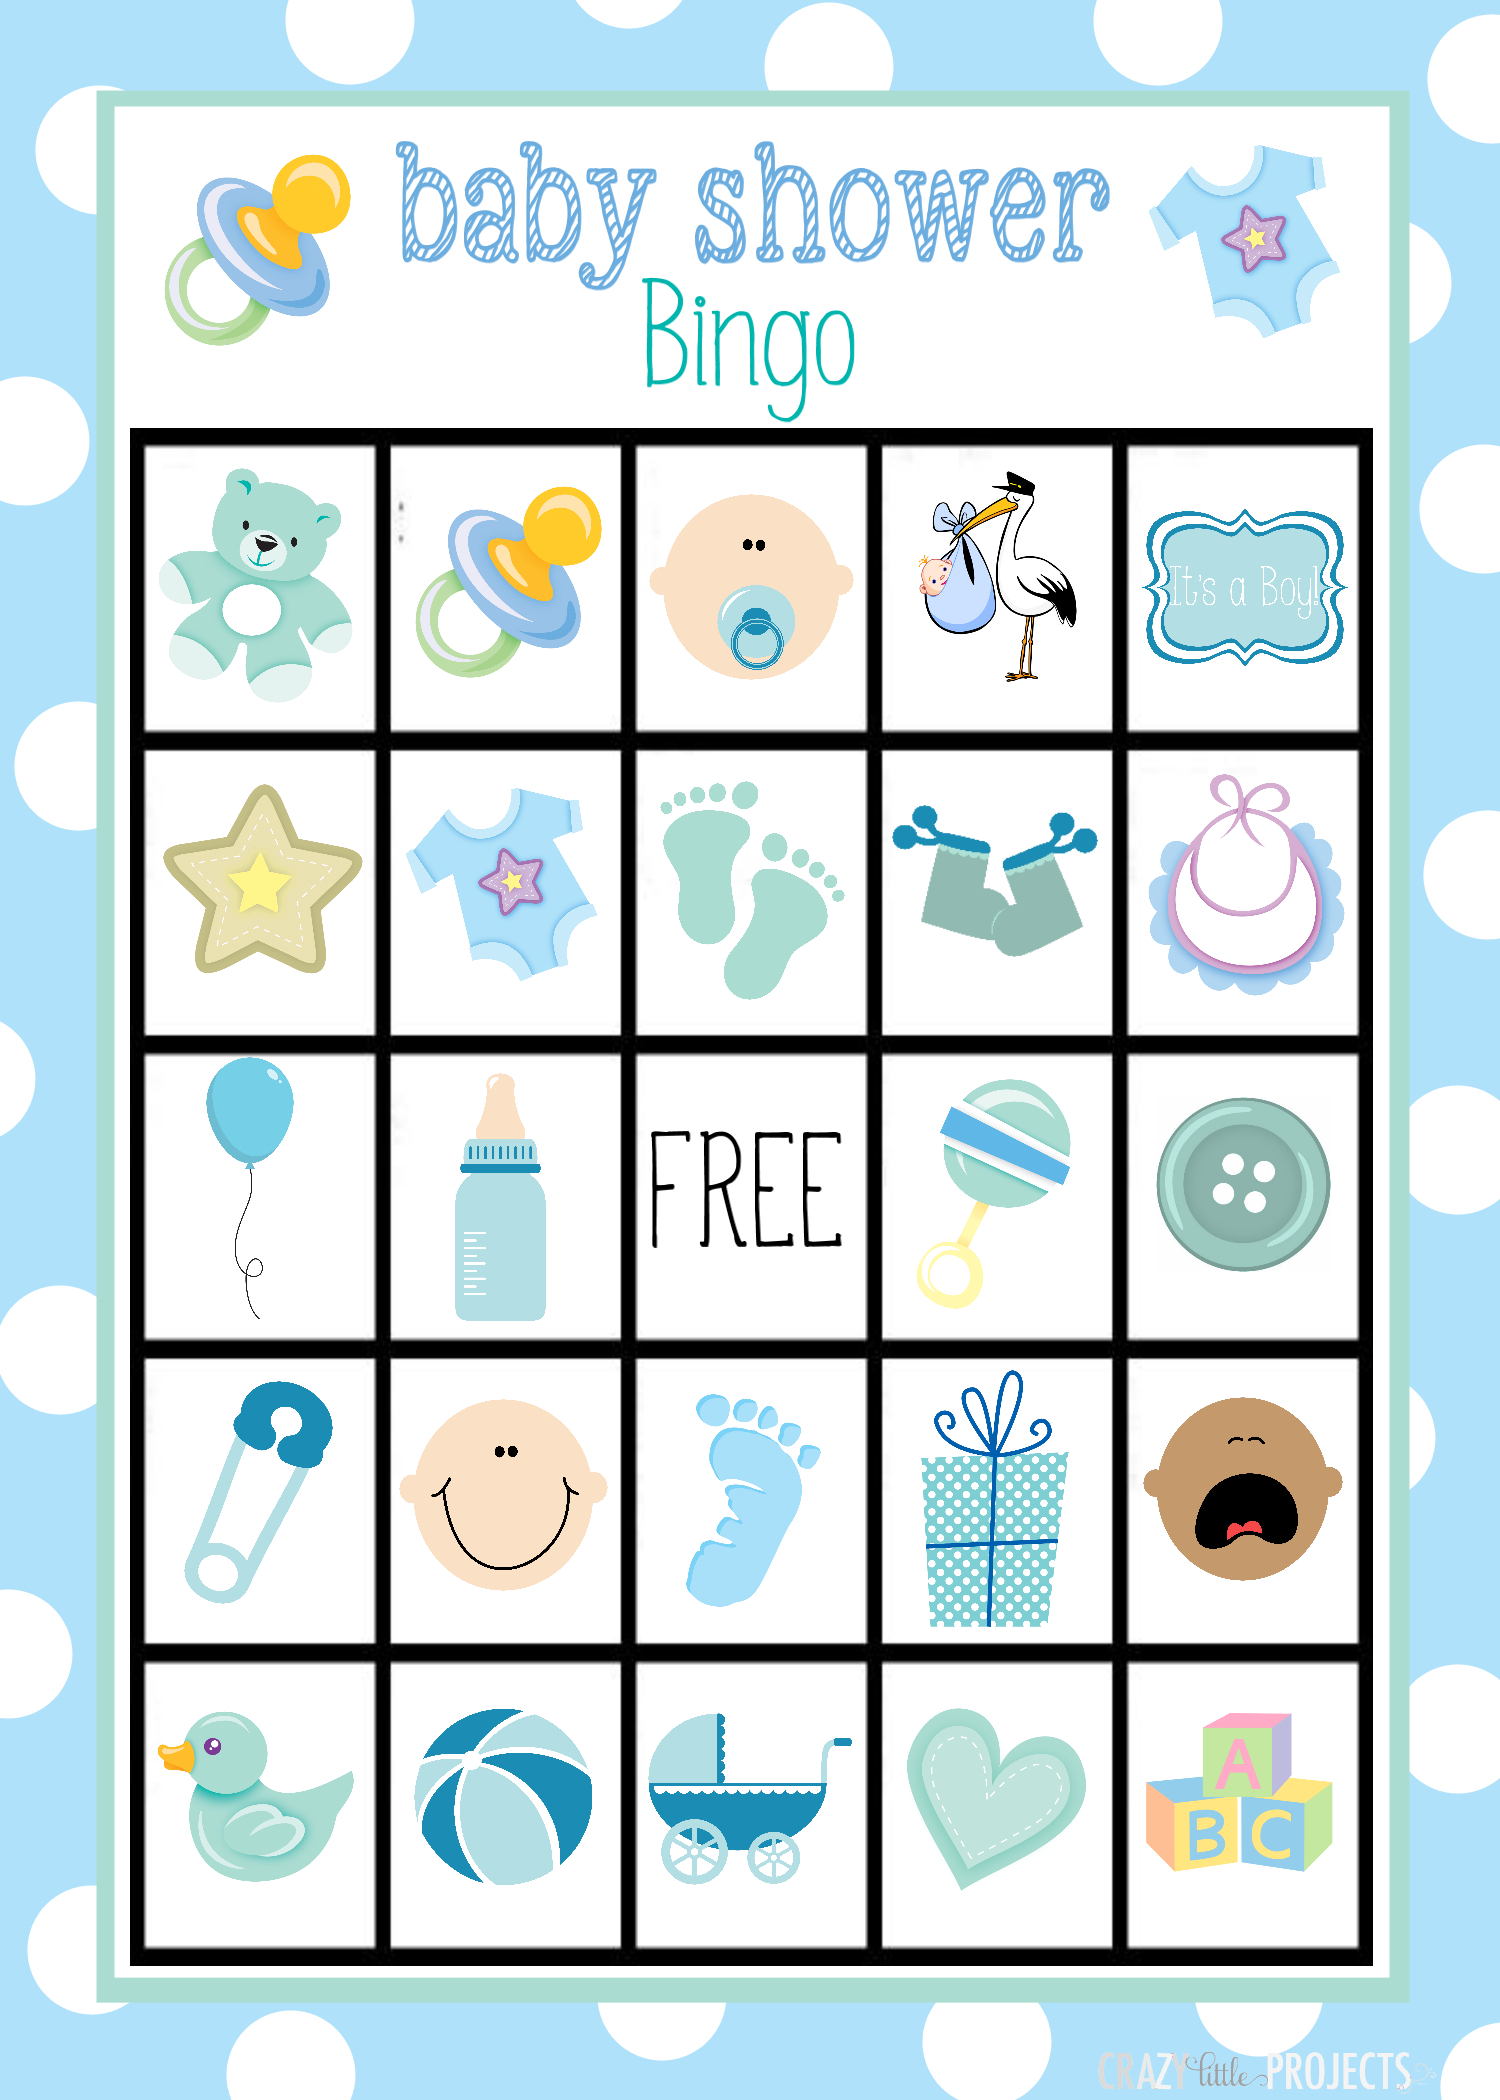 Baby Shower Bingo Cards - 50 Free Printable Baby Bingo Cards